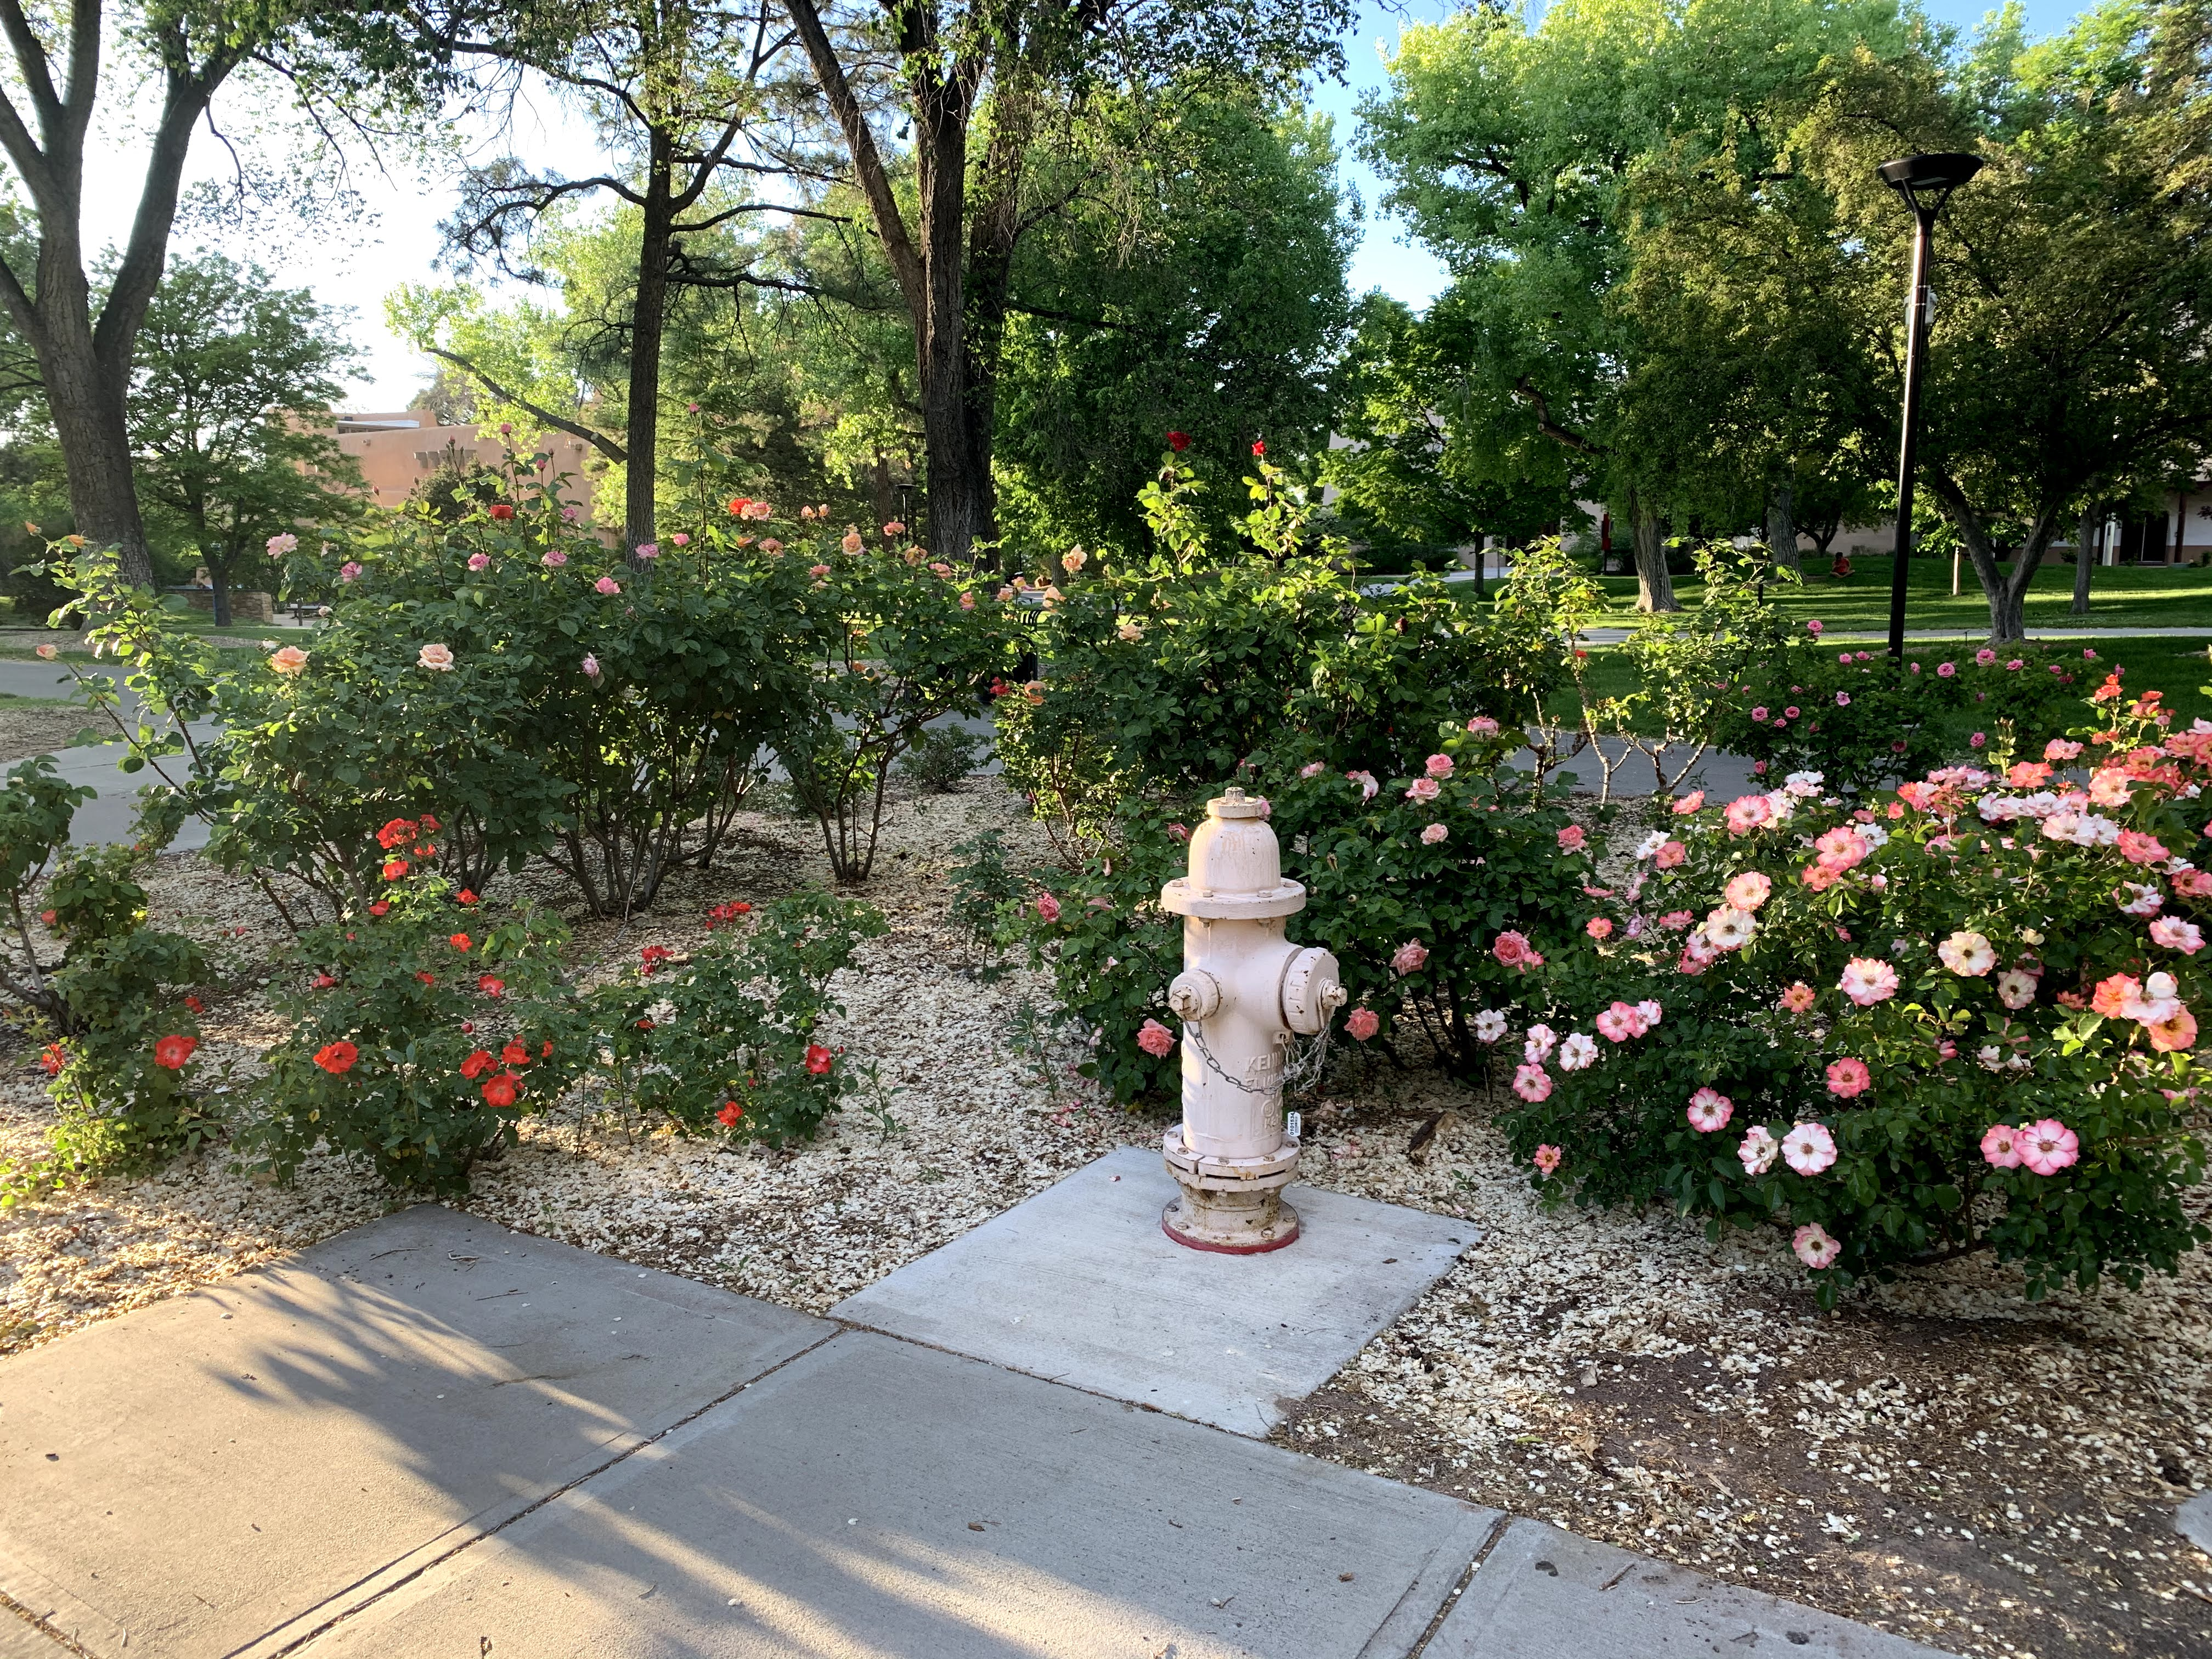 a fire hydrant amidst rose bushes